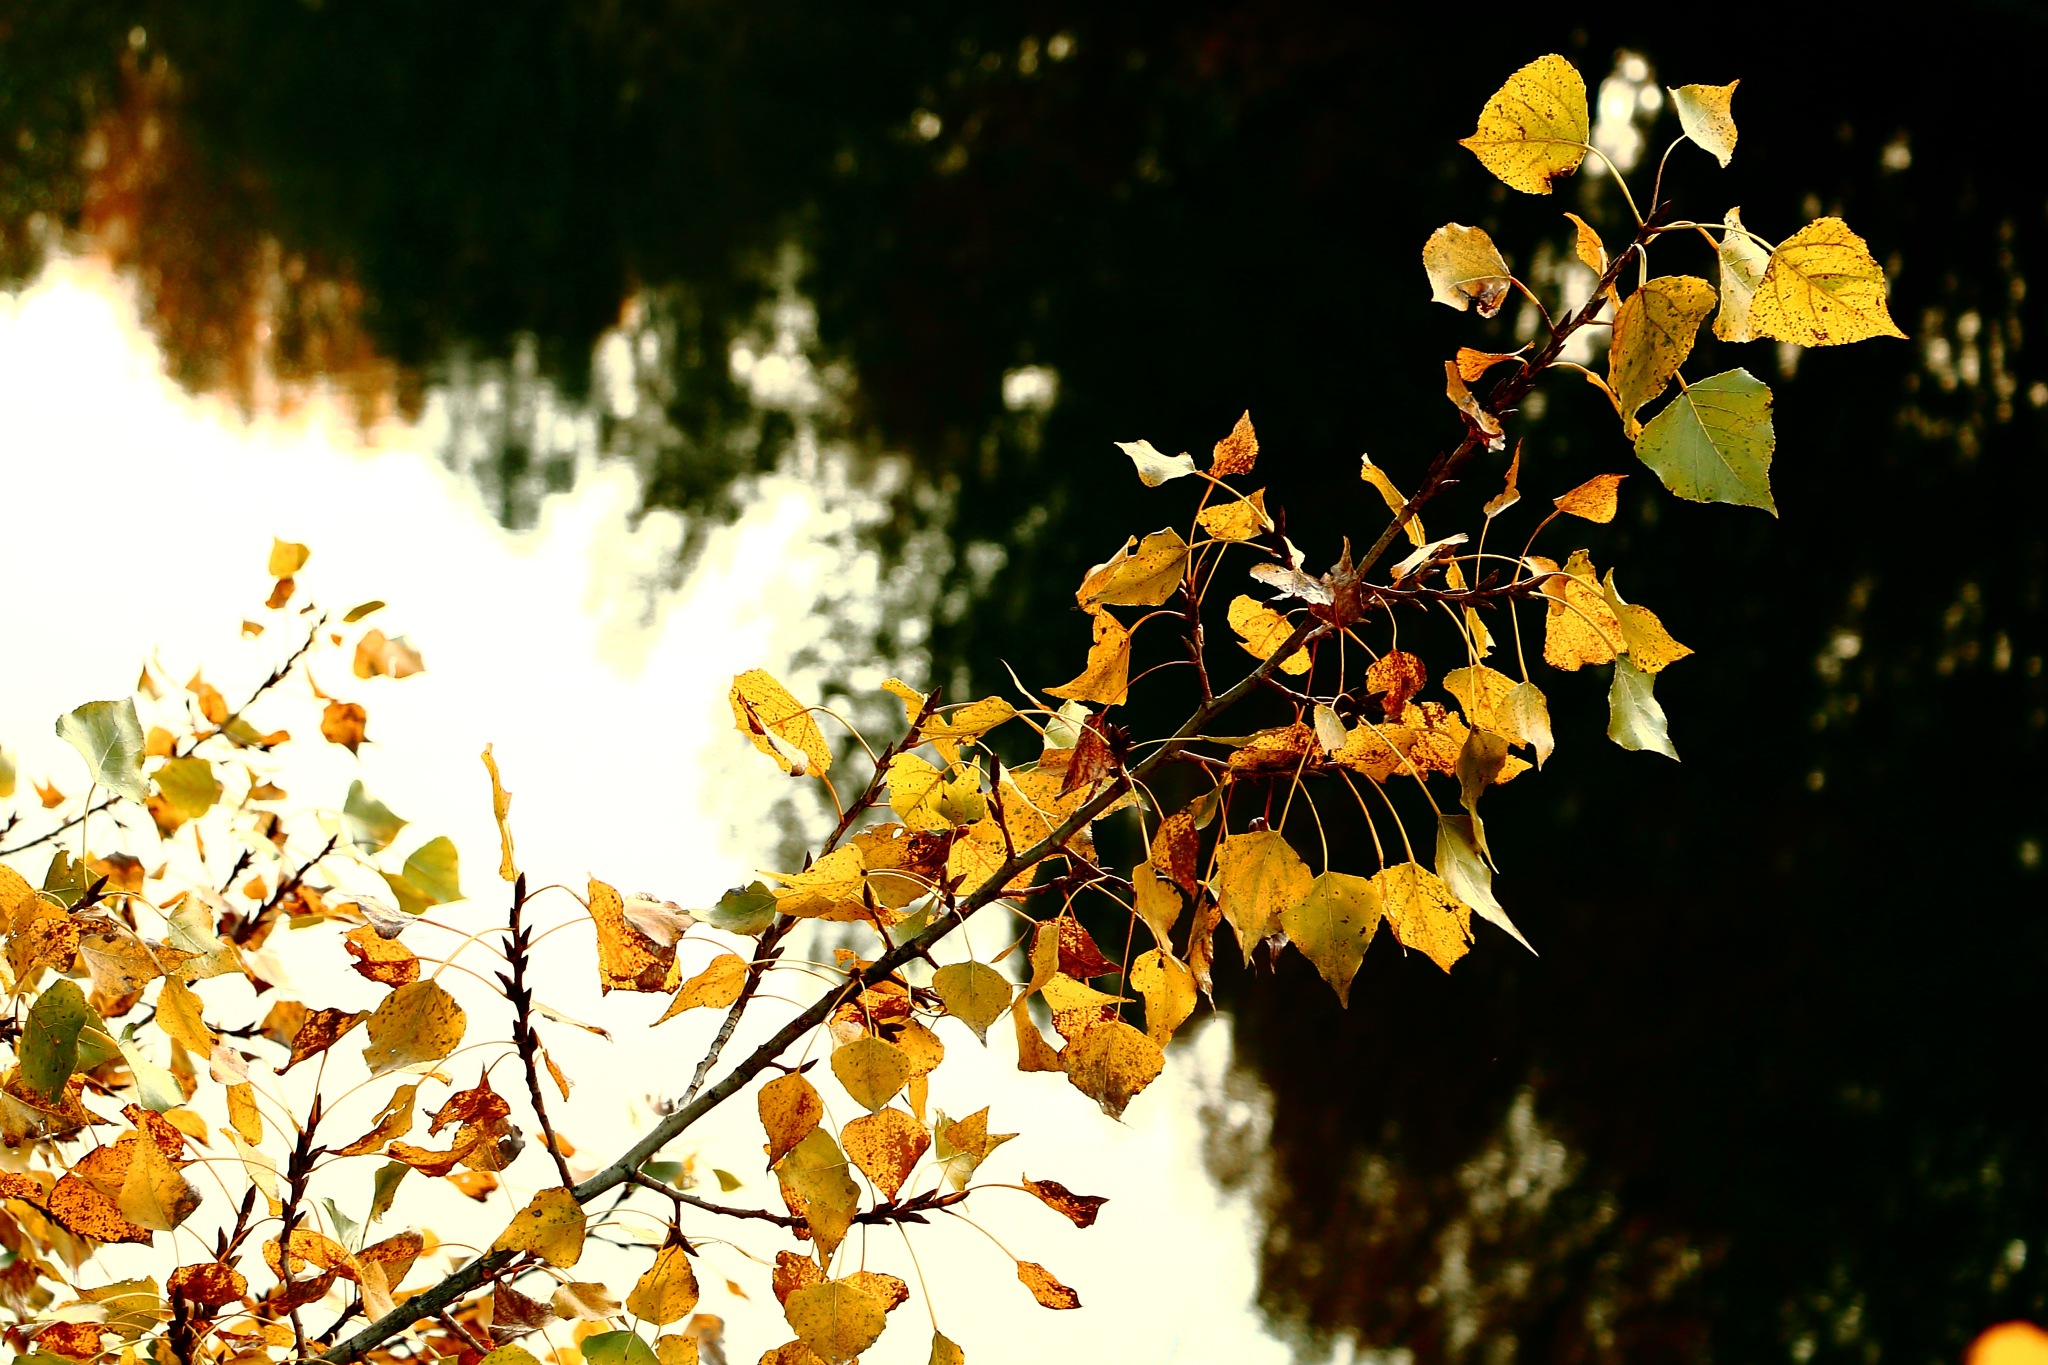 autumn leaves by RistylePhotography